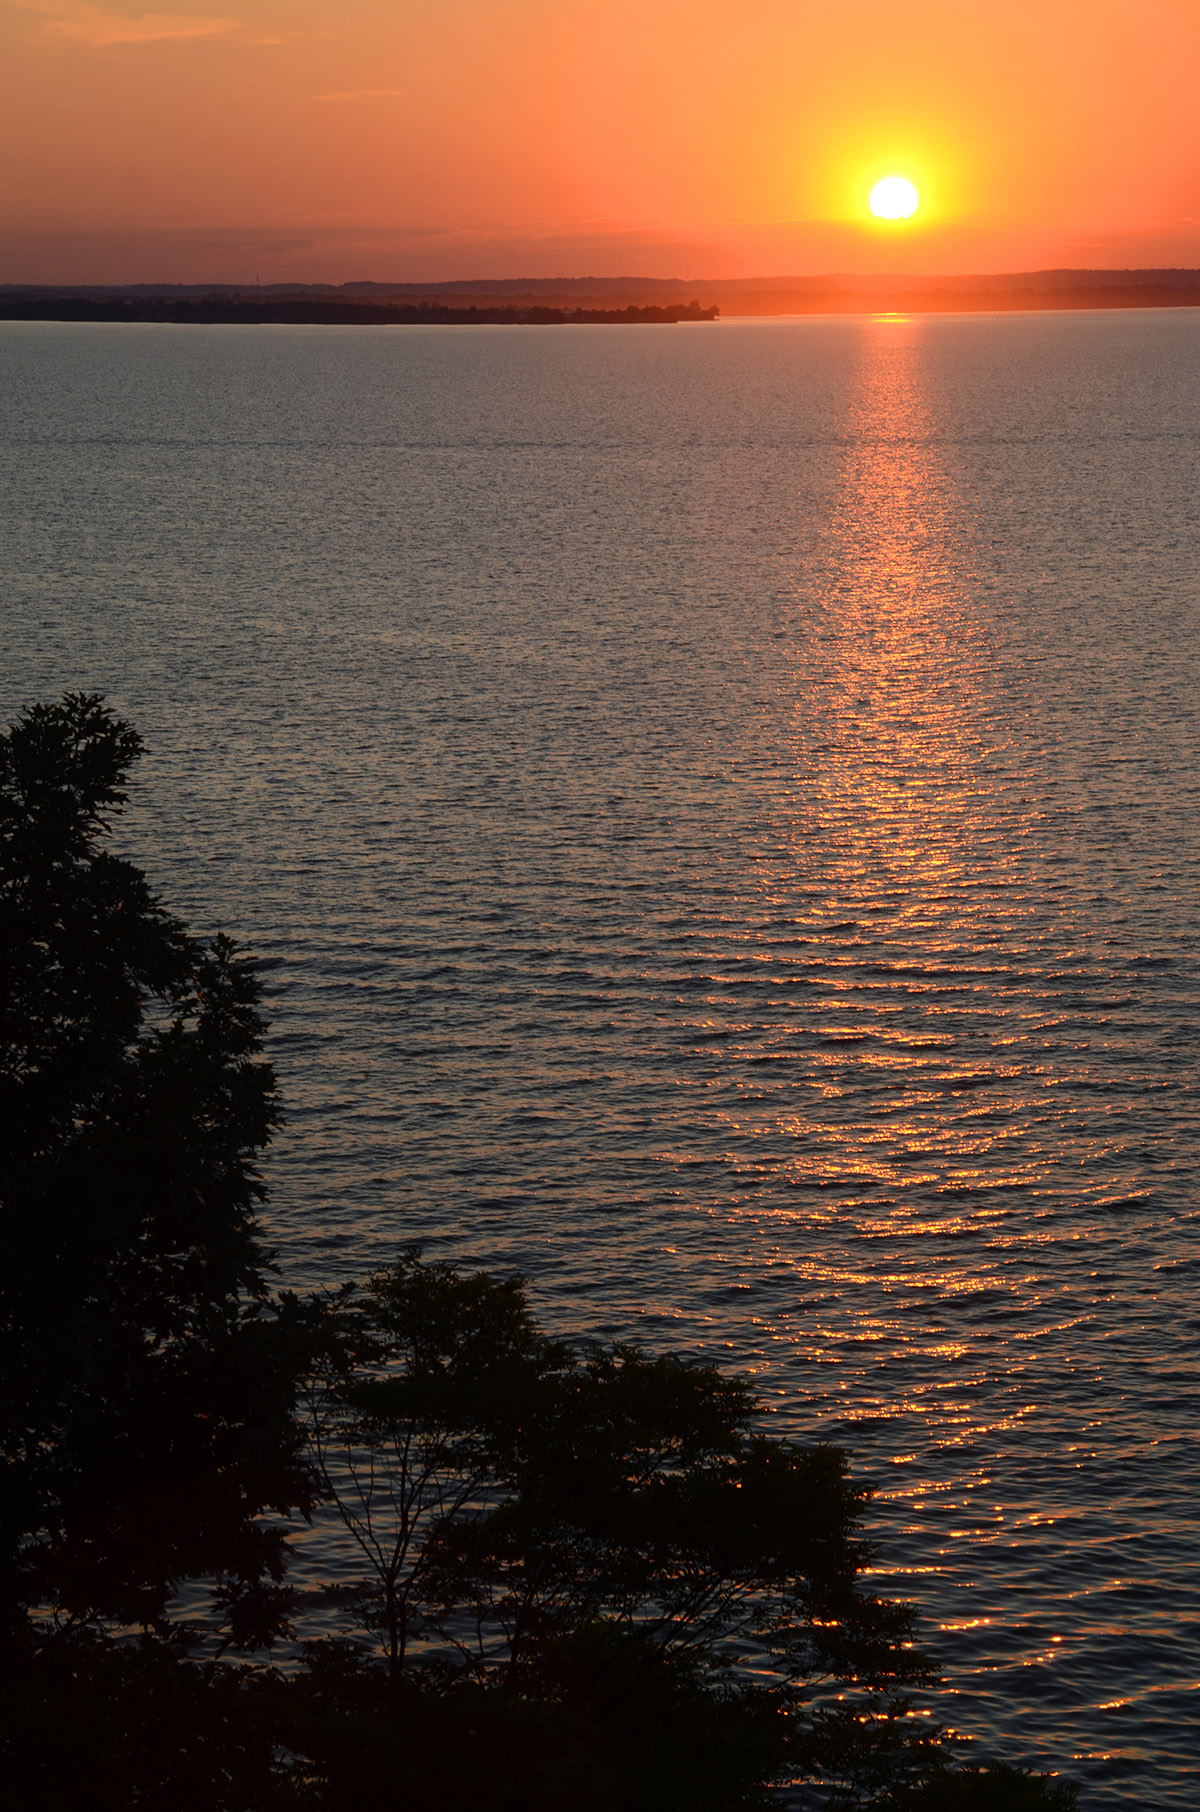 A sunset view from the cliffs along the Susquehanna River